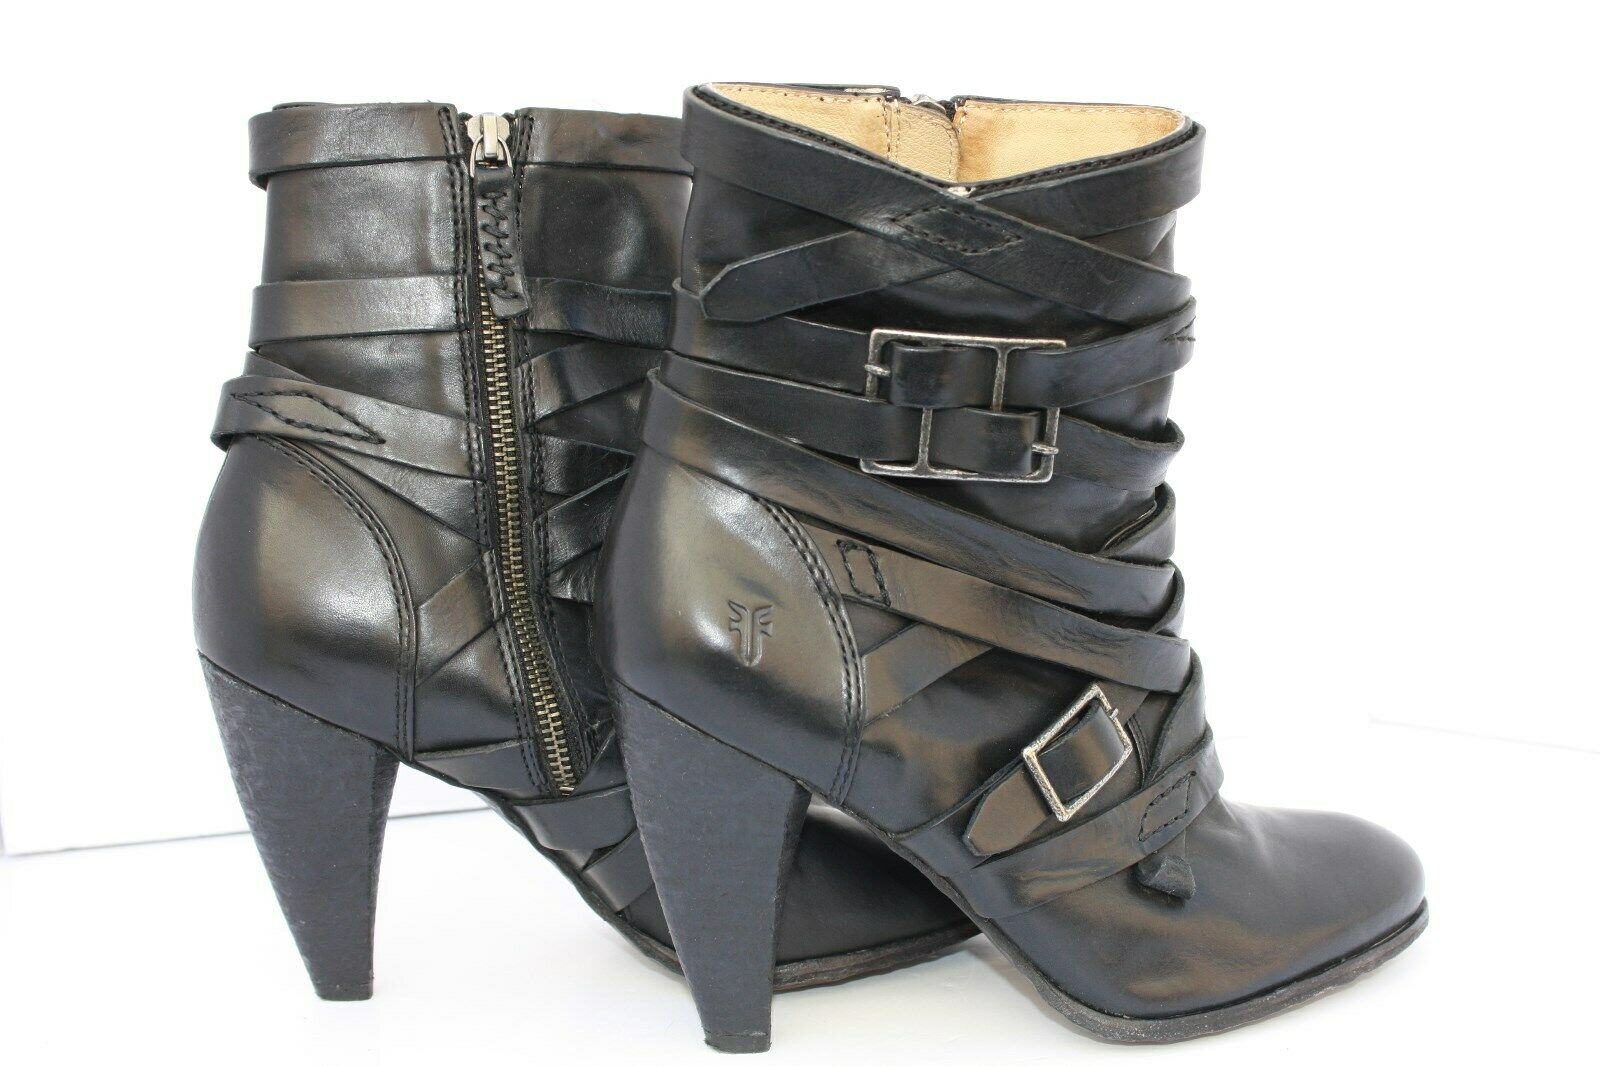 Frye Mikaela Women's Leather Strappy Boot Booties Black Size 8.5 8.5 8.5 M cd14af